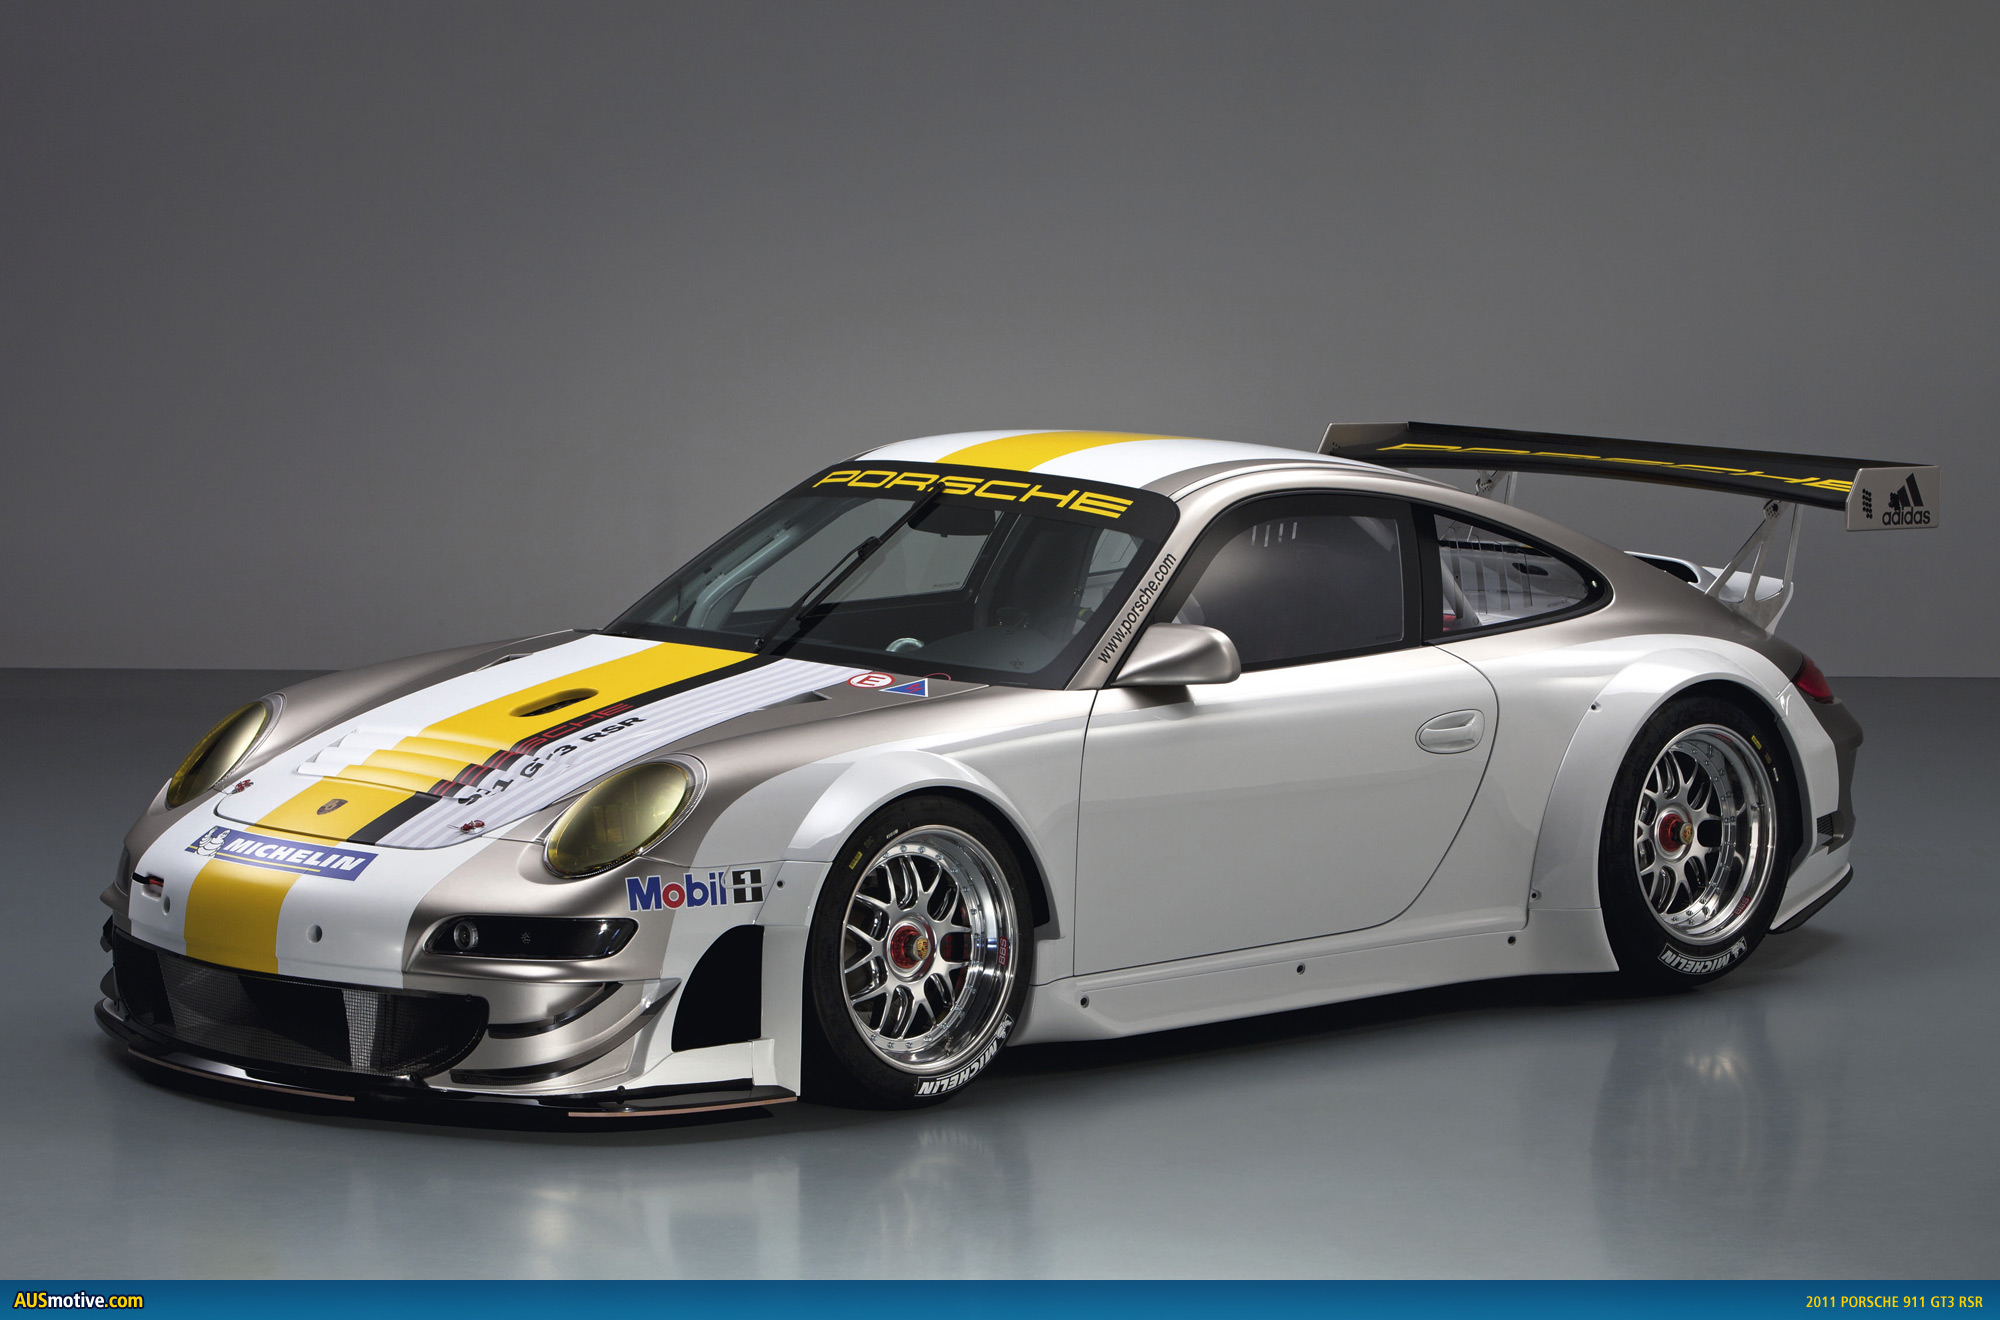 2011 porsche 911 gt3 rsr. Black Bedroom Furniture Sets. Home Design Ideas